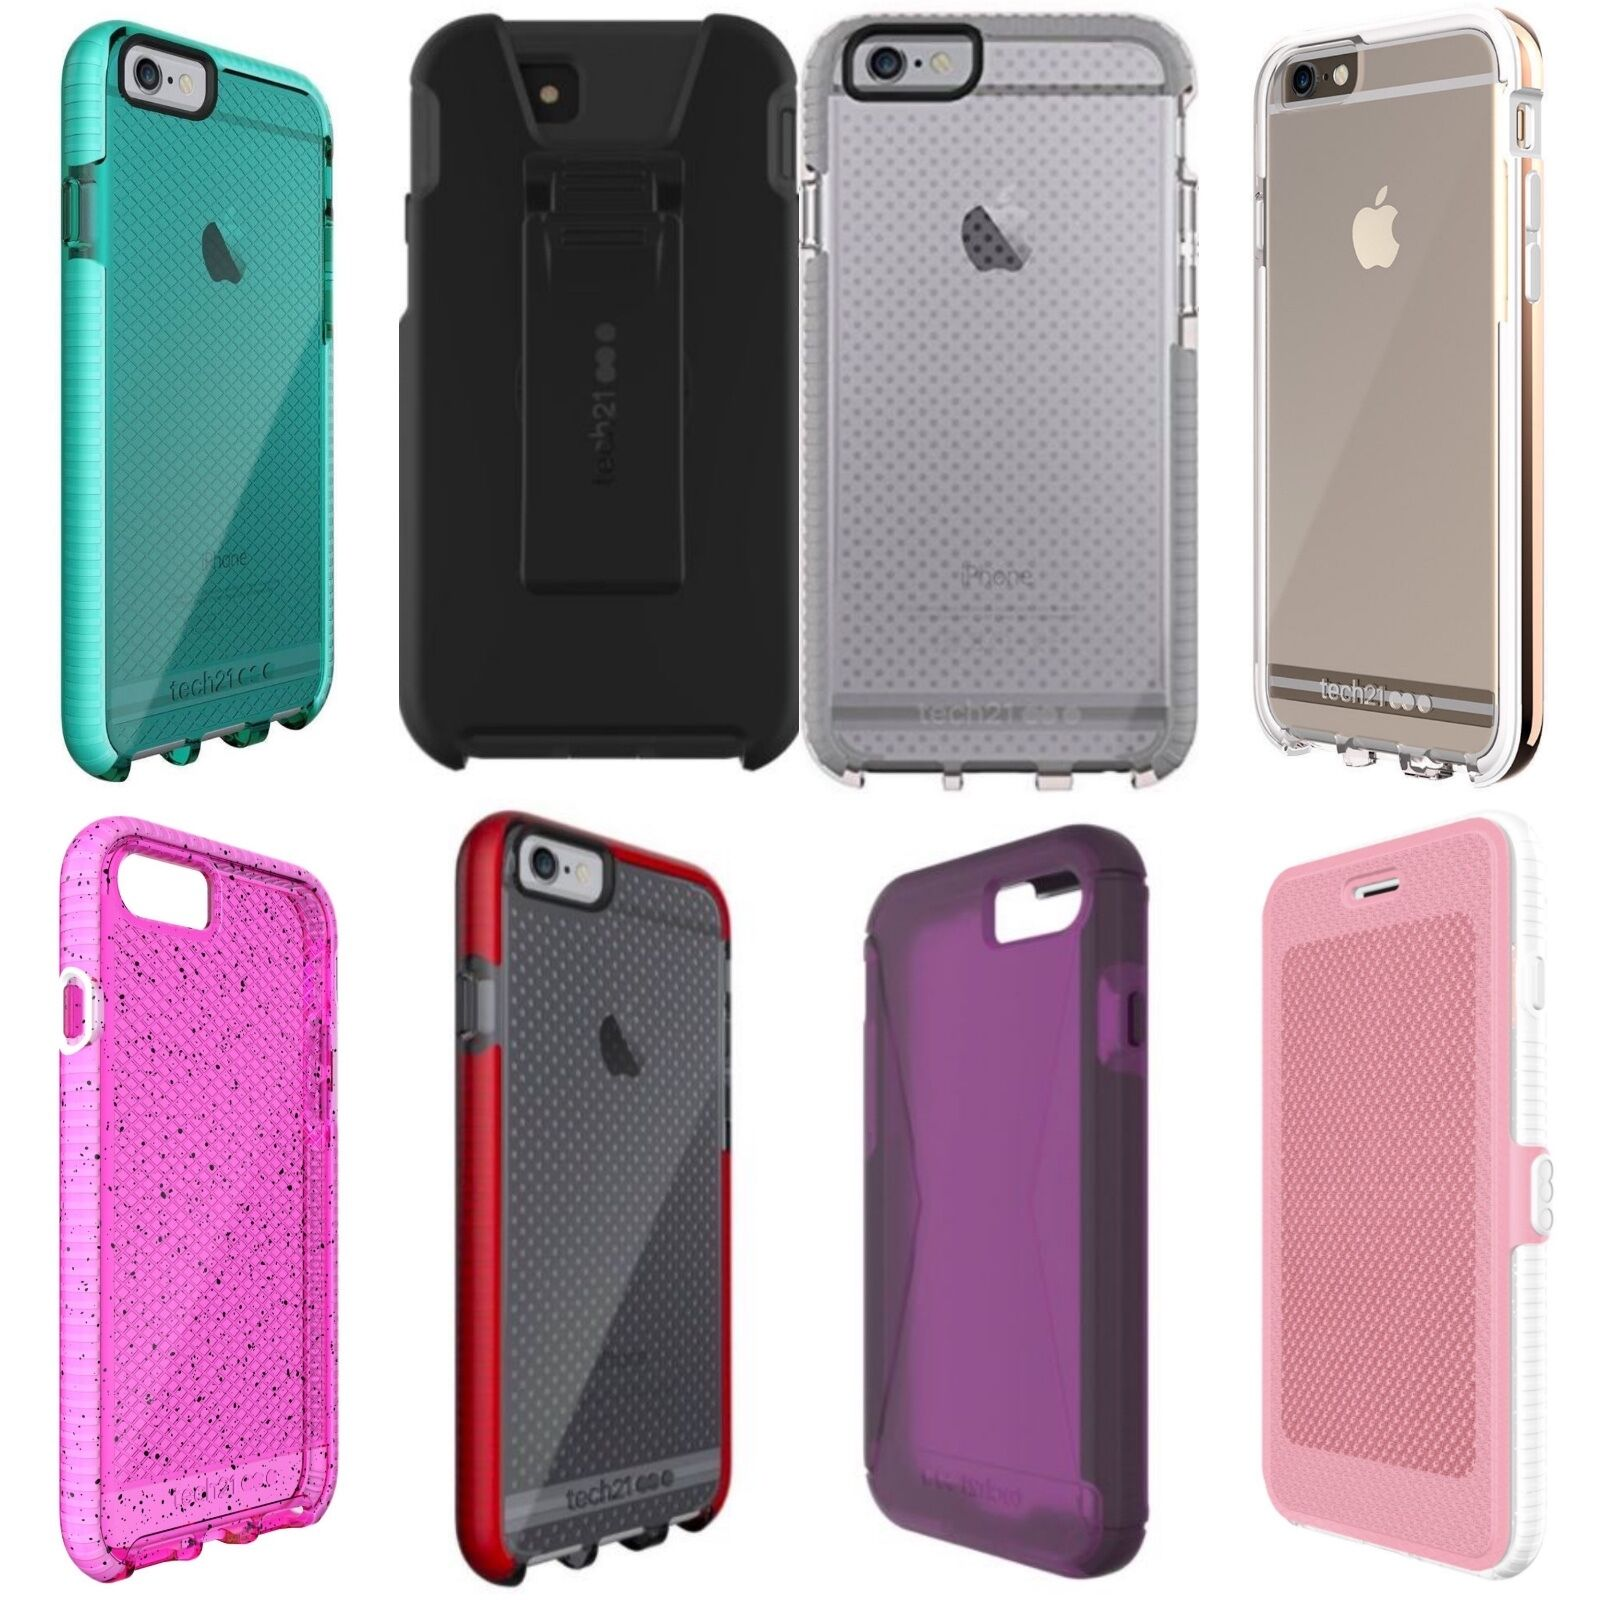 Tech21 Evo Elite Check Case iPhone 5/5s/SE/6s/6 Plus/6s Plus/7 Plus/8/8 Plus